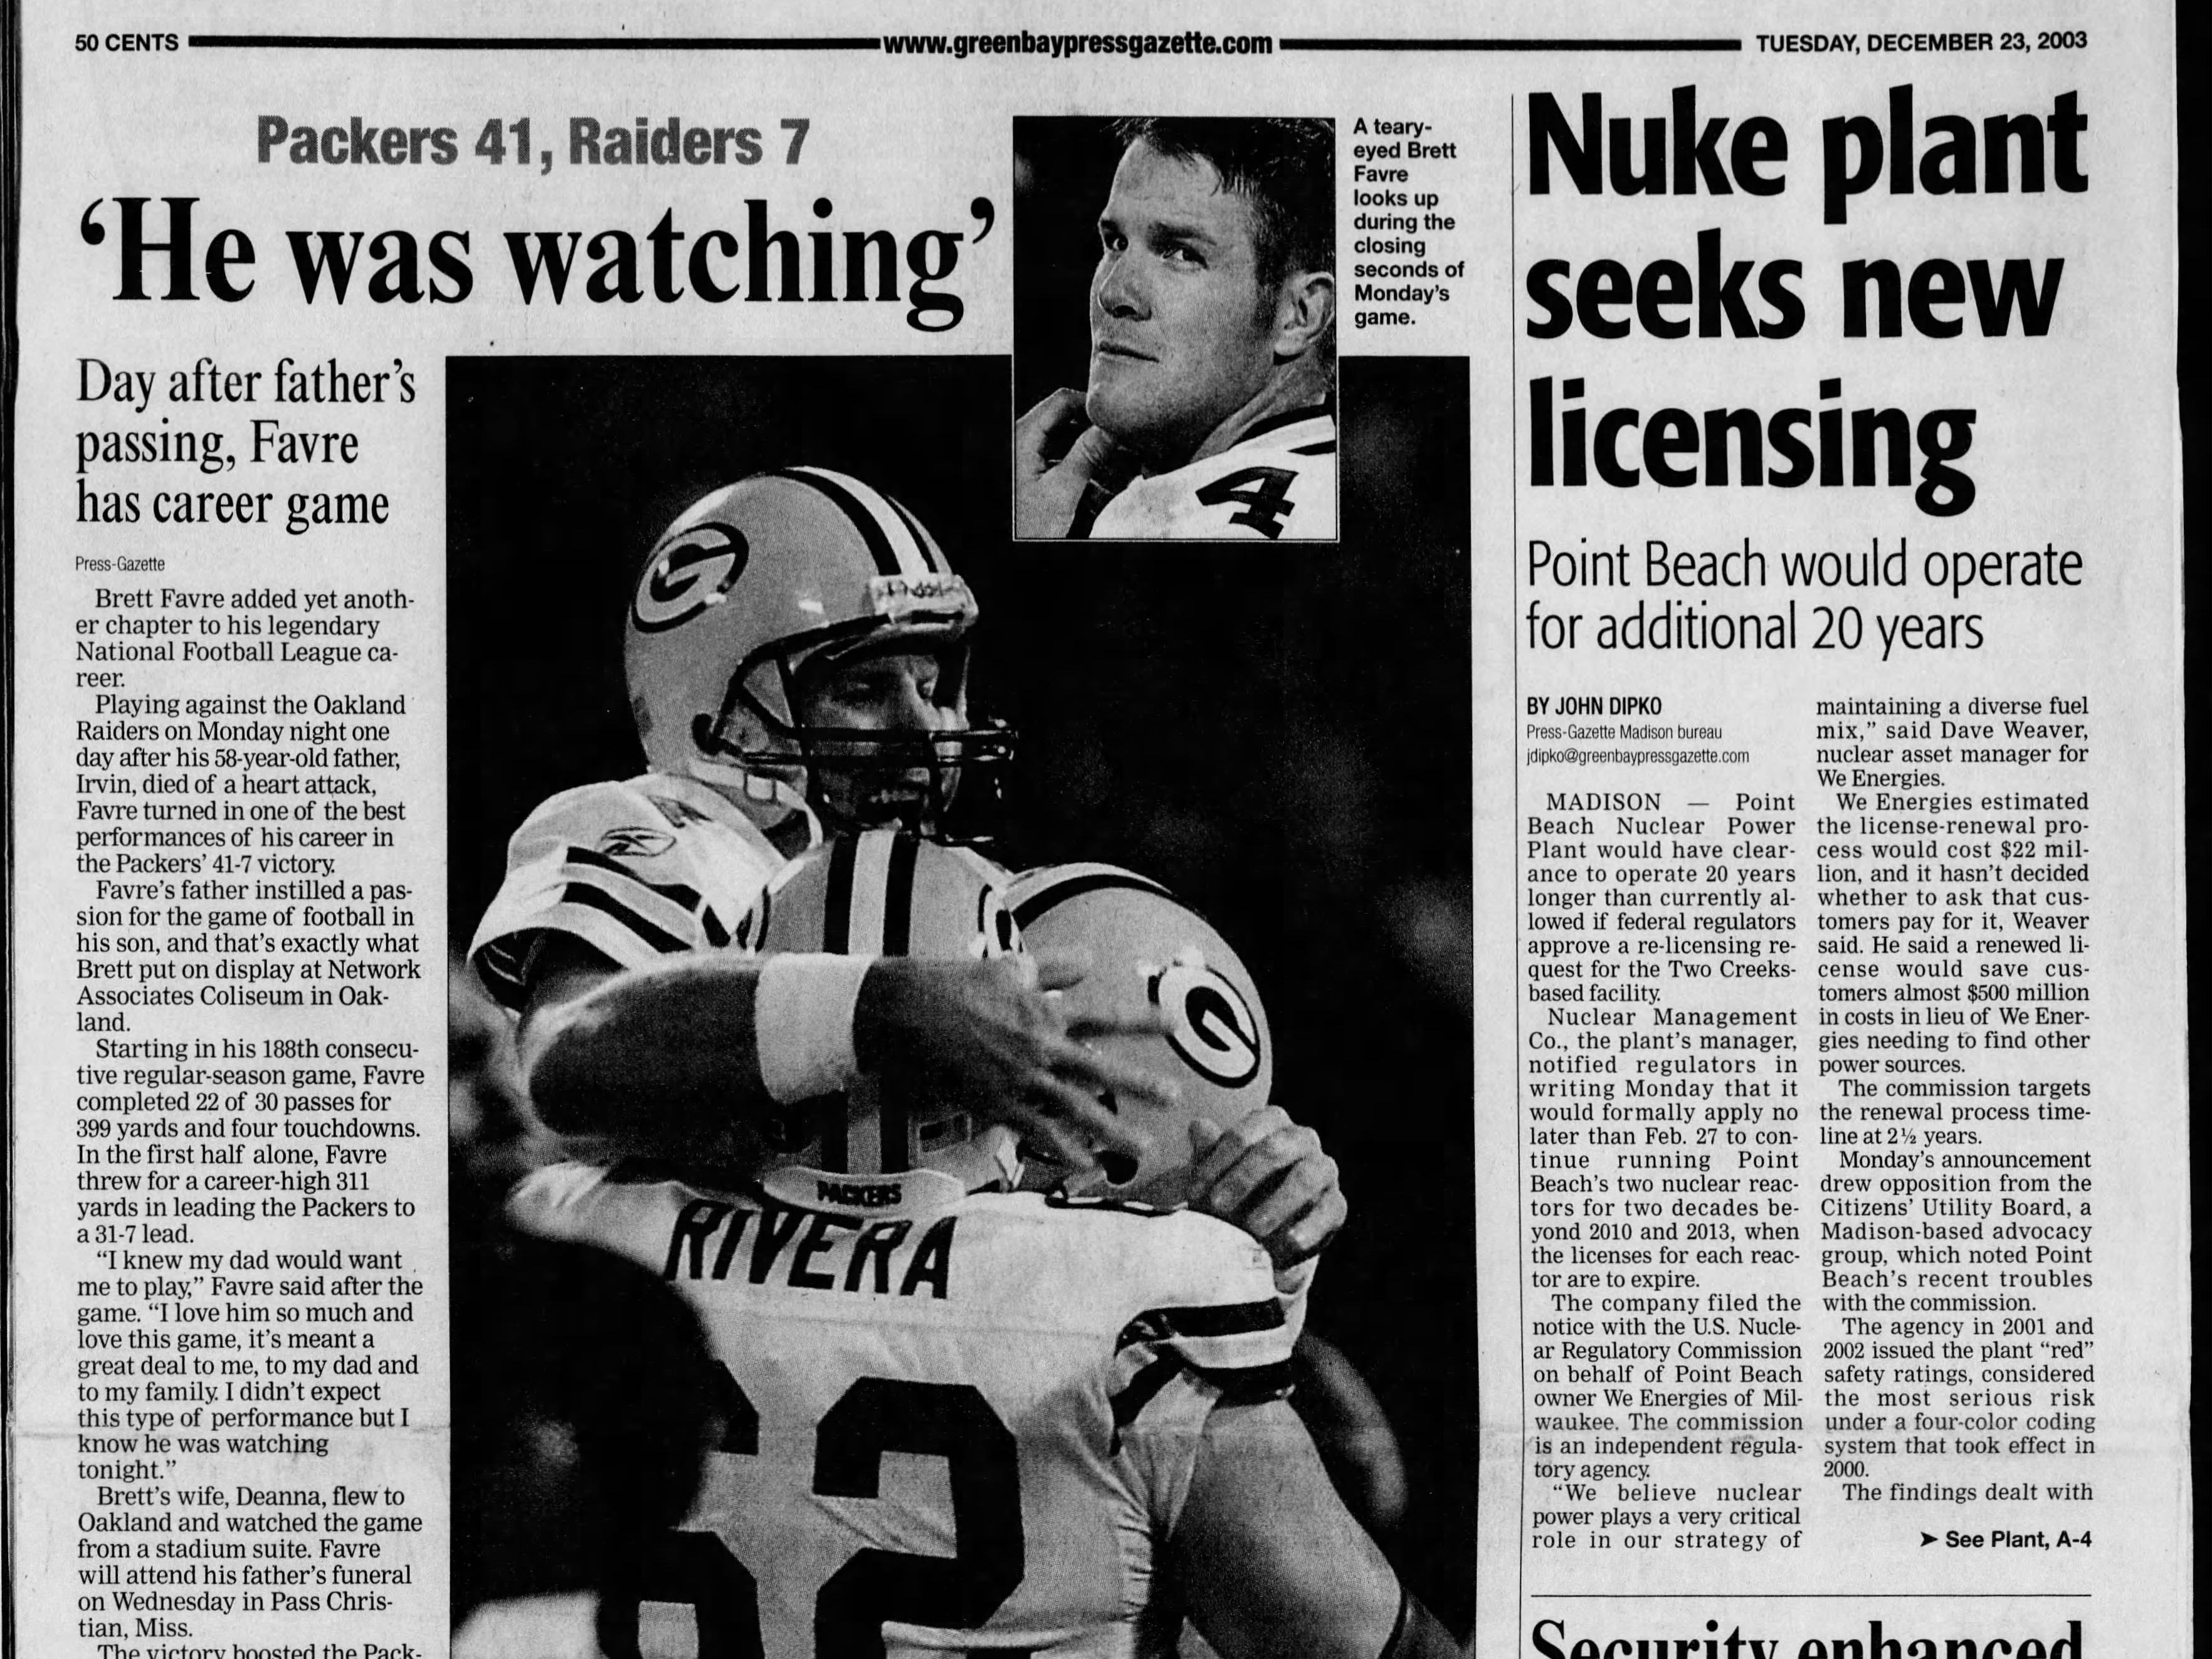 Today in History: Dec. 23, 2003